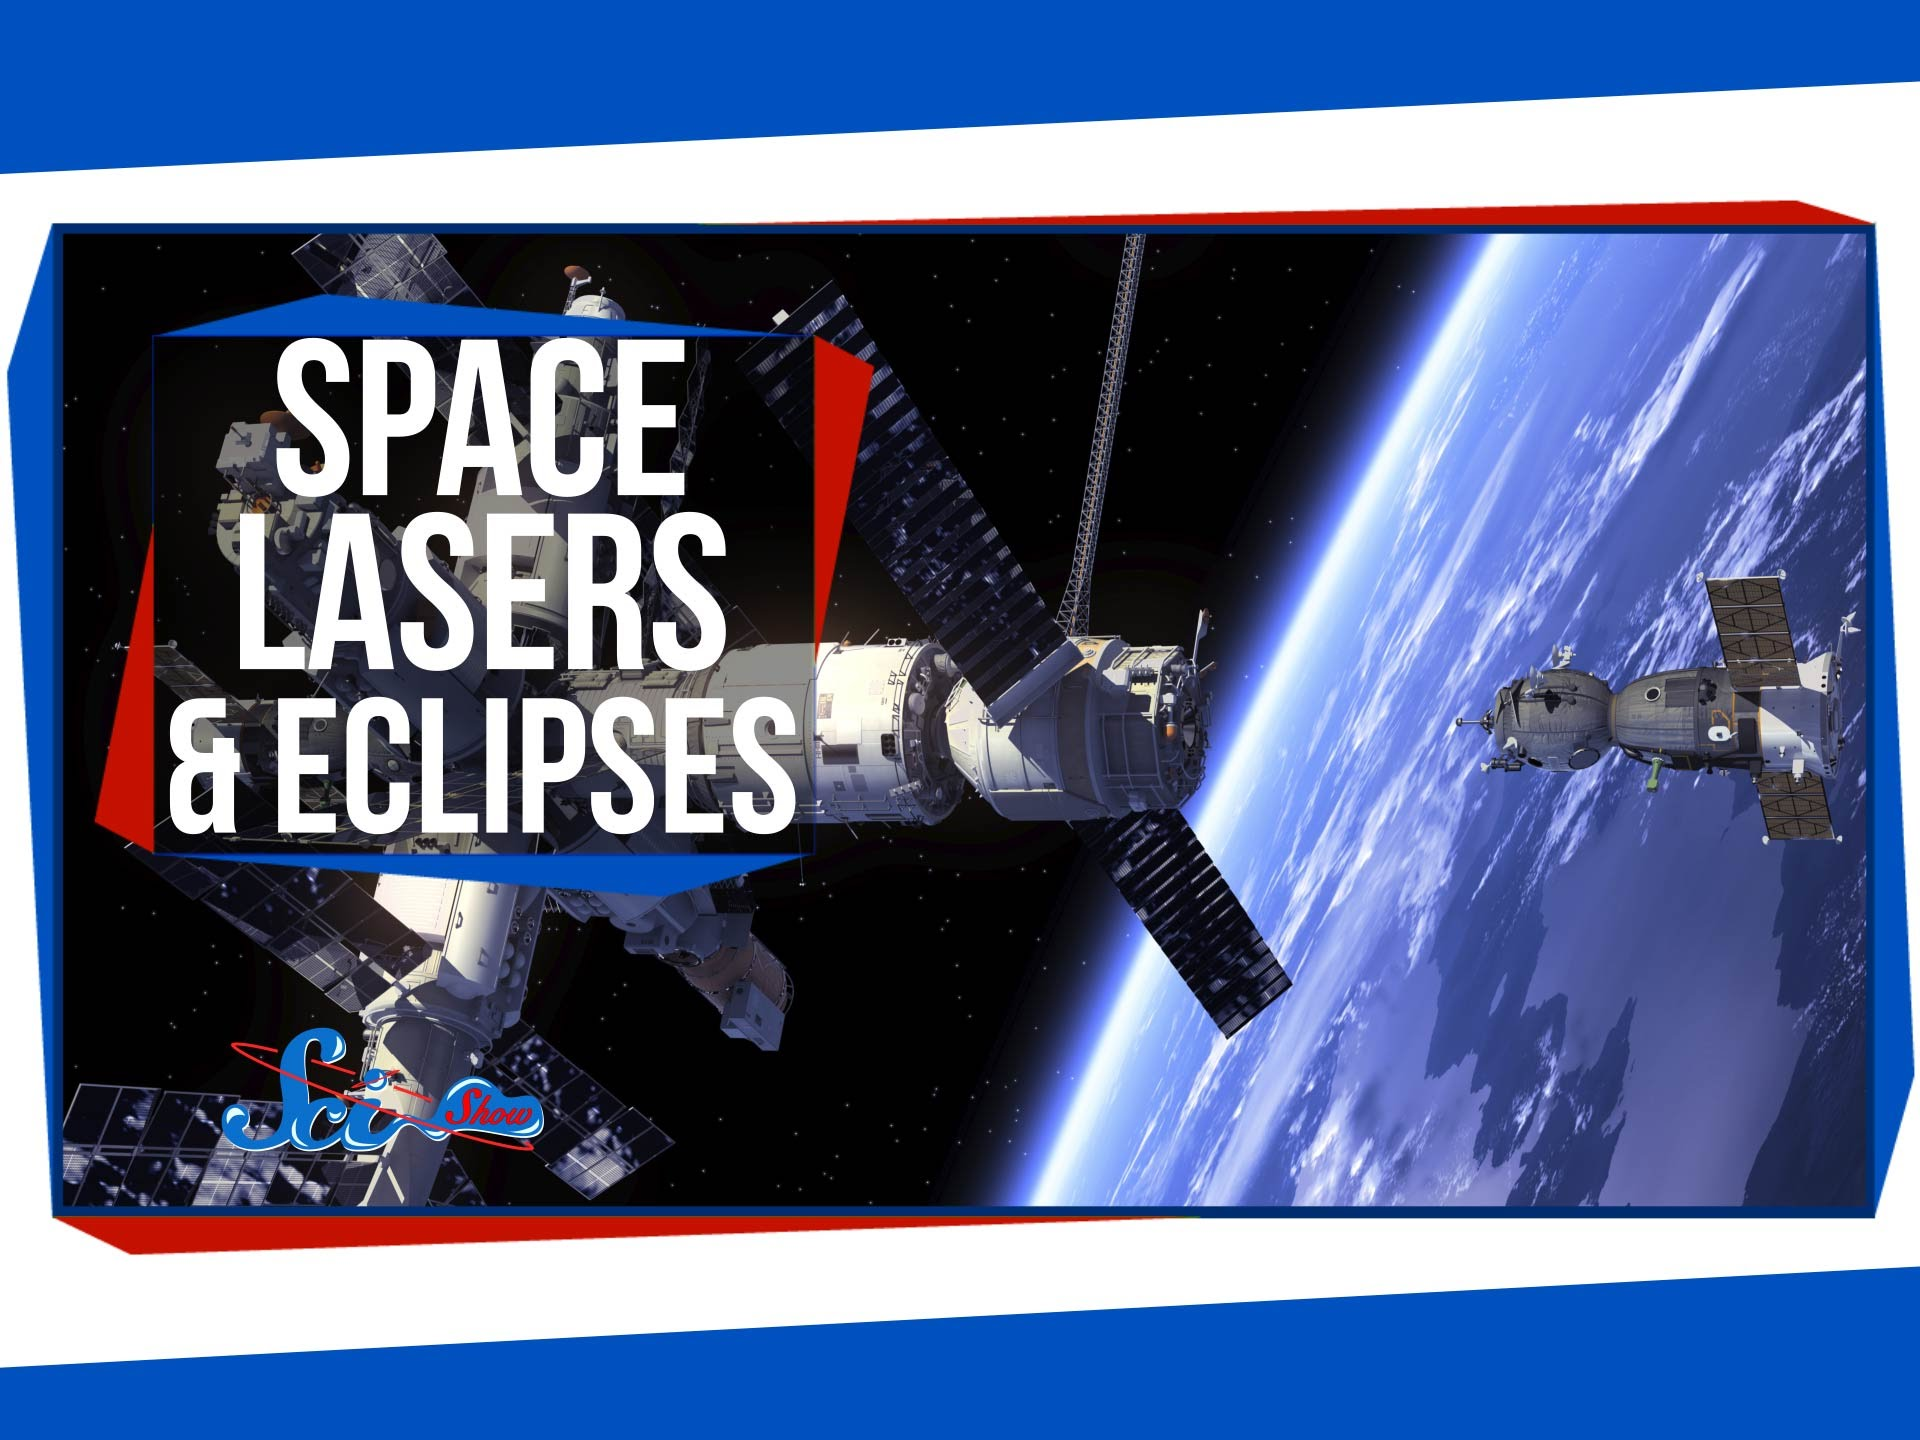 Destroying Space Junk With Lasers